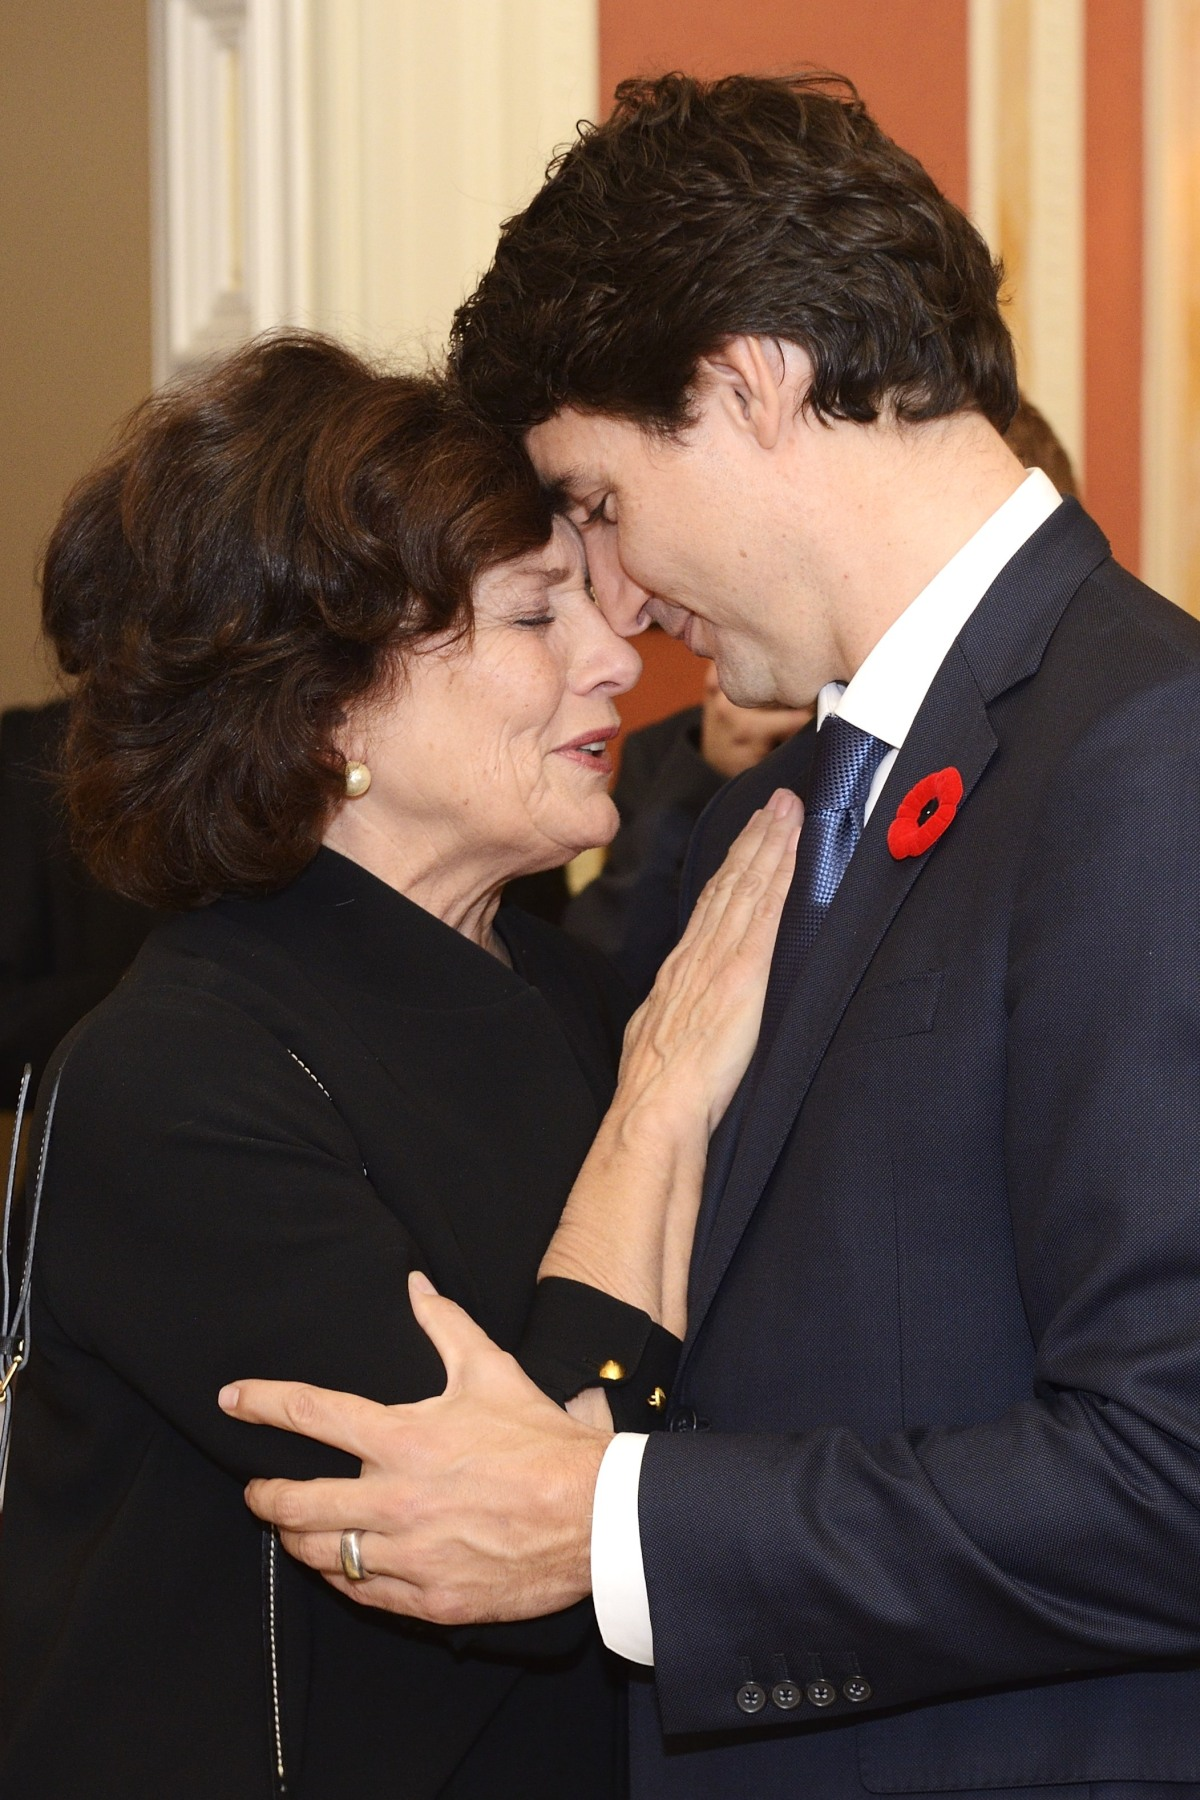 Just before entering the Ballroom, Mr. Trudeau had a special moment with his mother Margaret Trudeau.